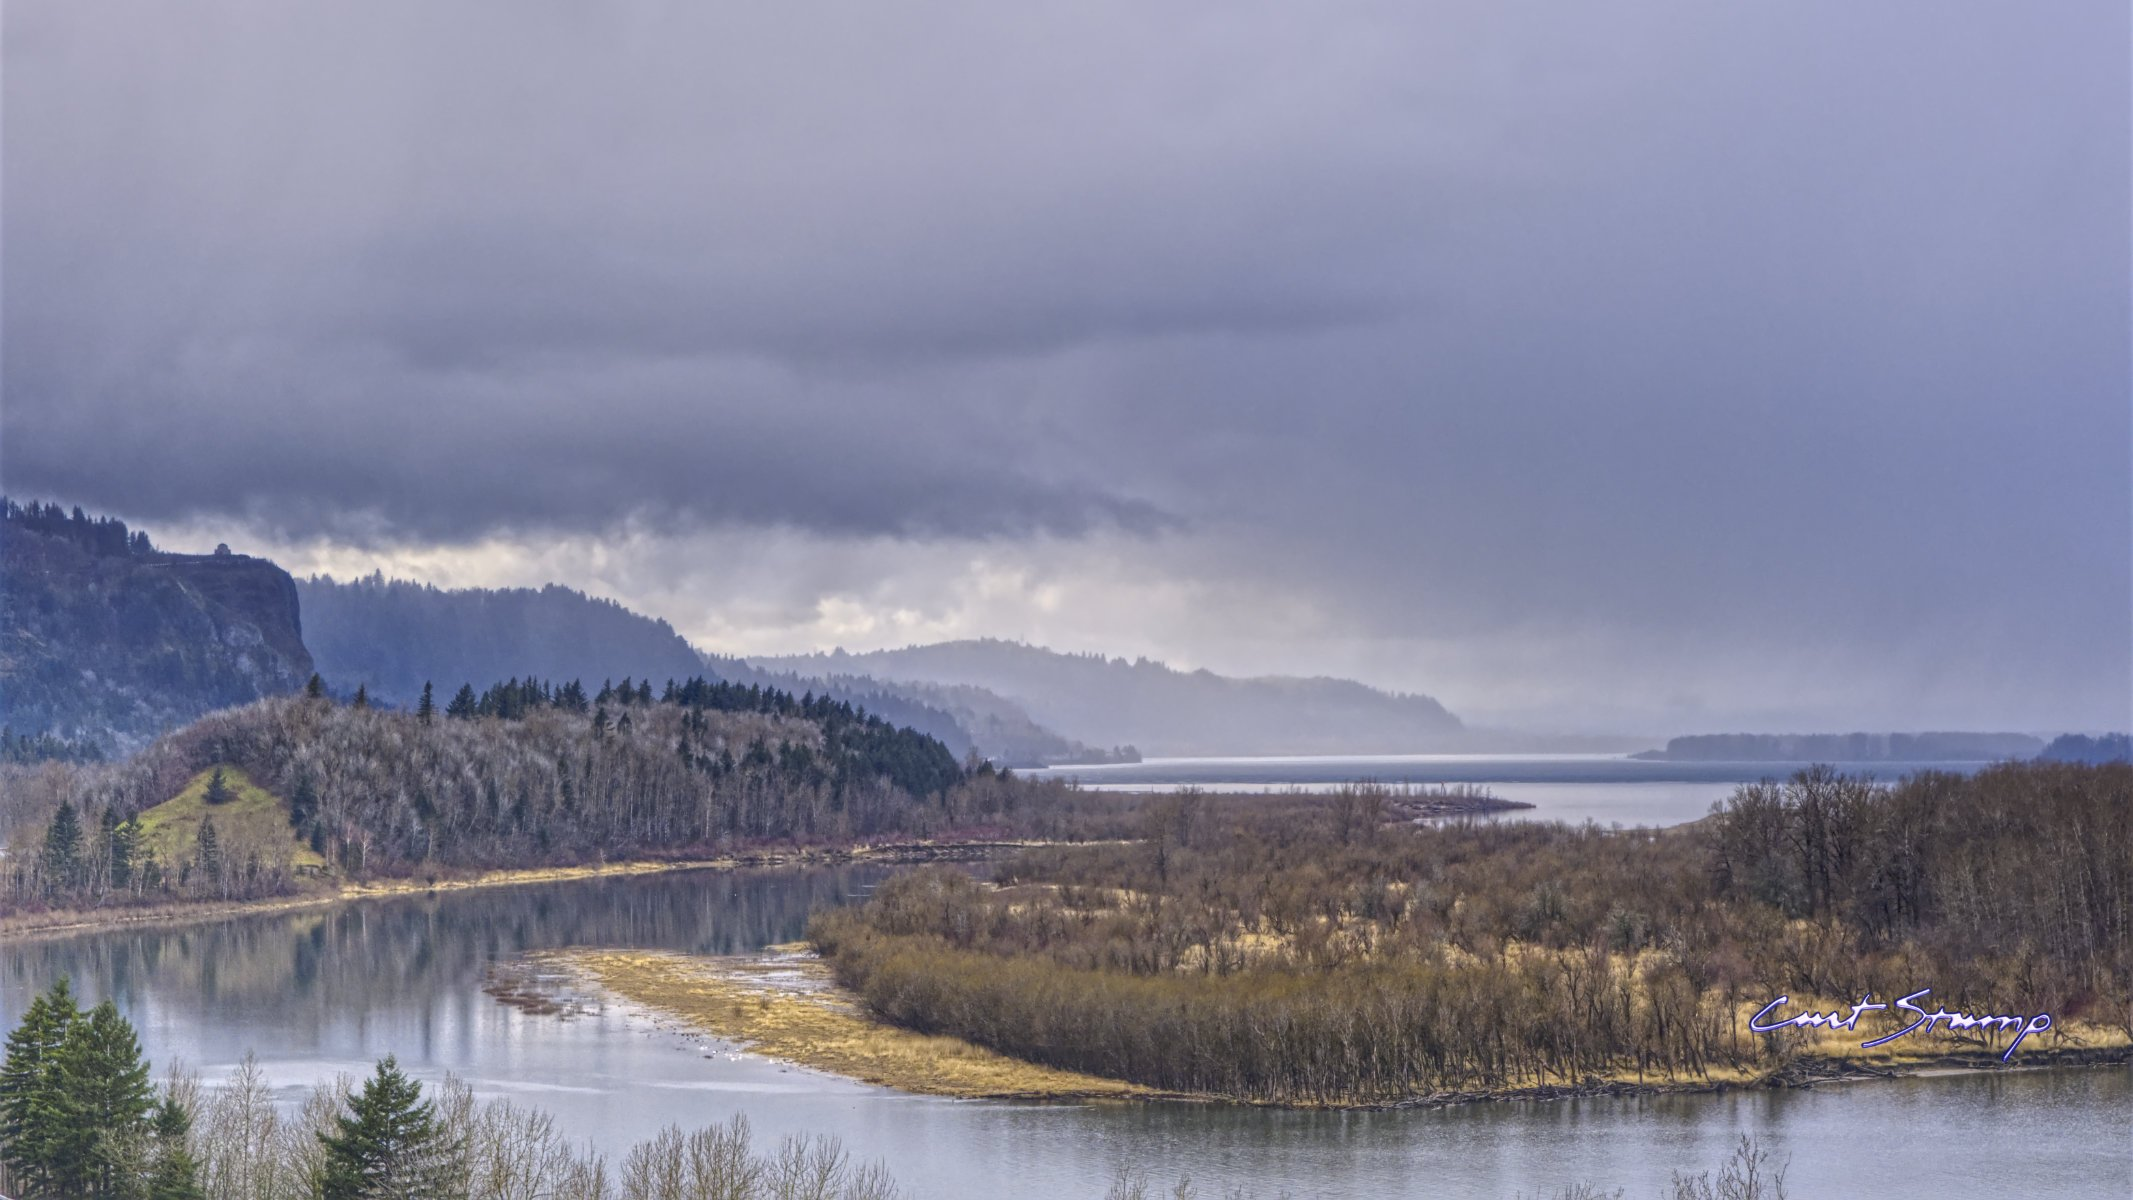 Photo of the Columbia River Gorge near Portland, Oregon. Photo is looking West as the river flows. Island in foreground, rain shower in the distance.